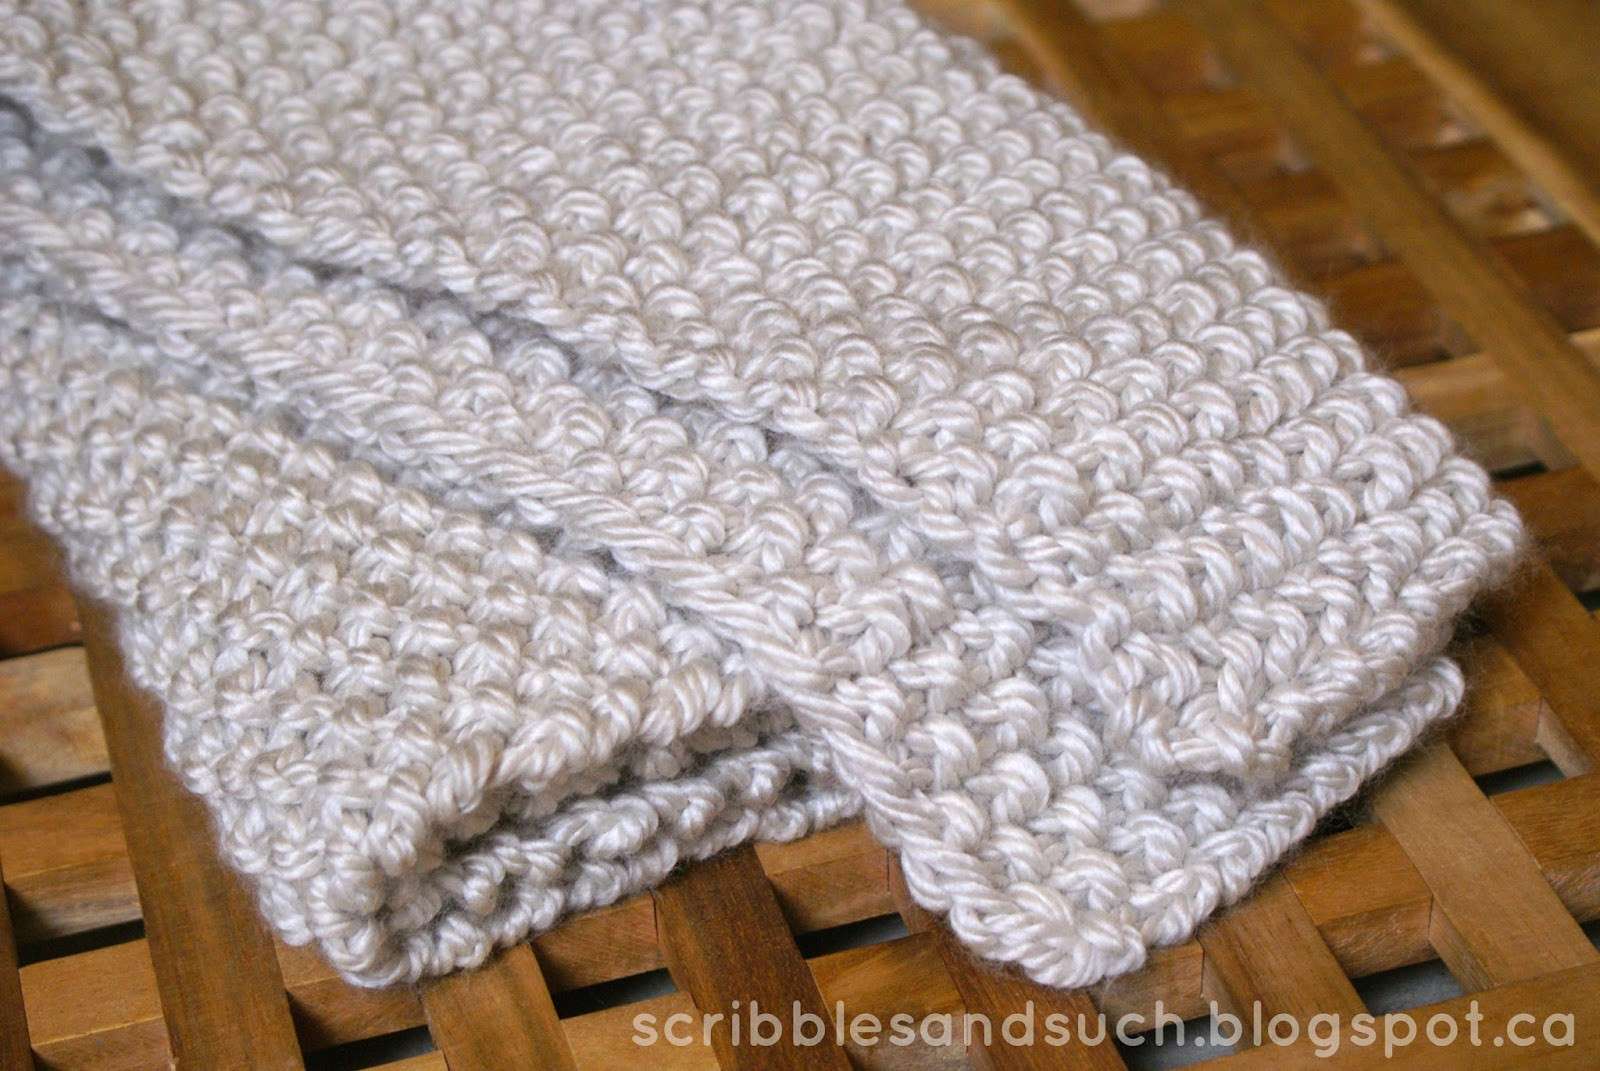 Blanket Yarn Patterns Inspirational Scribbles & Such Chunky Knitted Baby Blanket Of Superb 45 Pictures Blanket Yarn Patterns